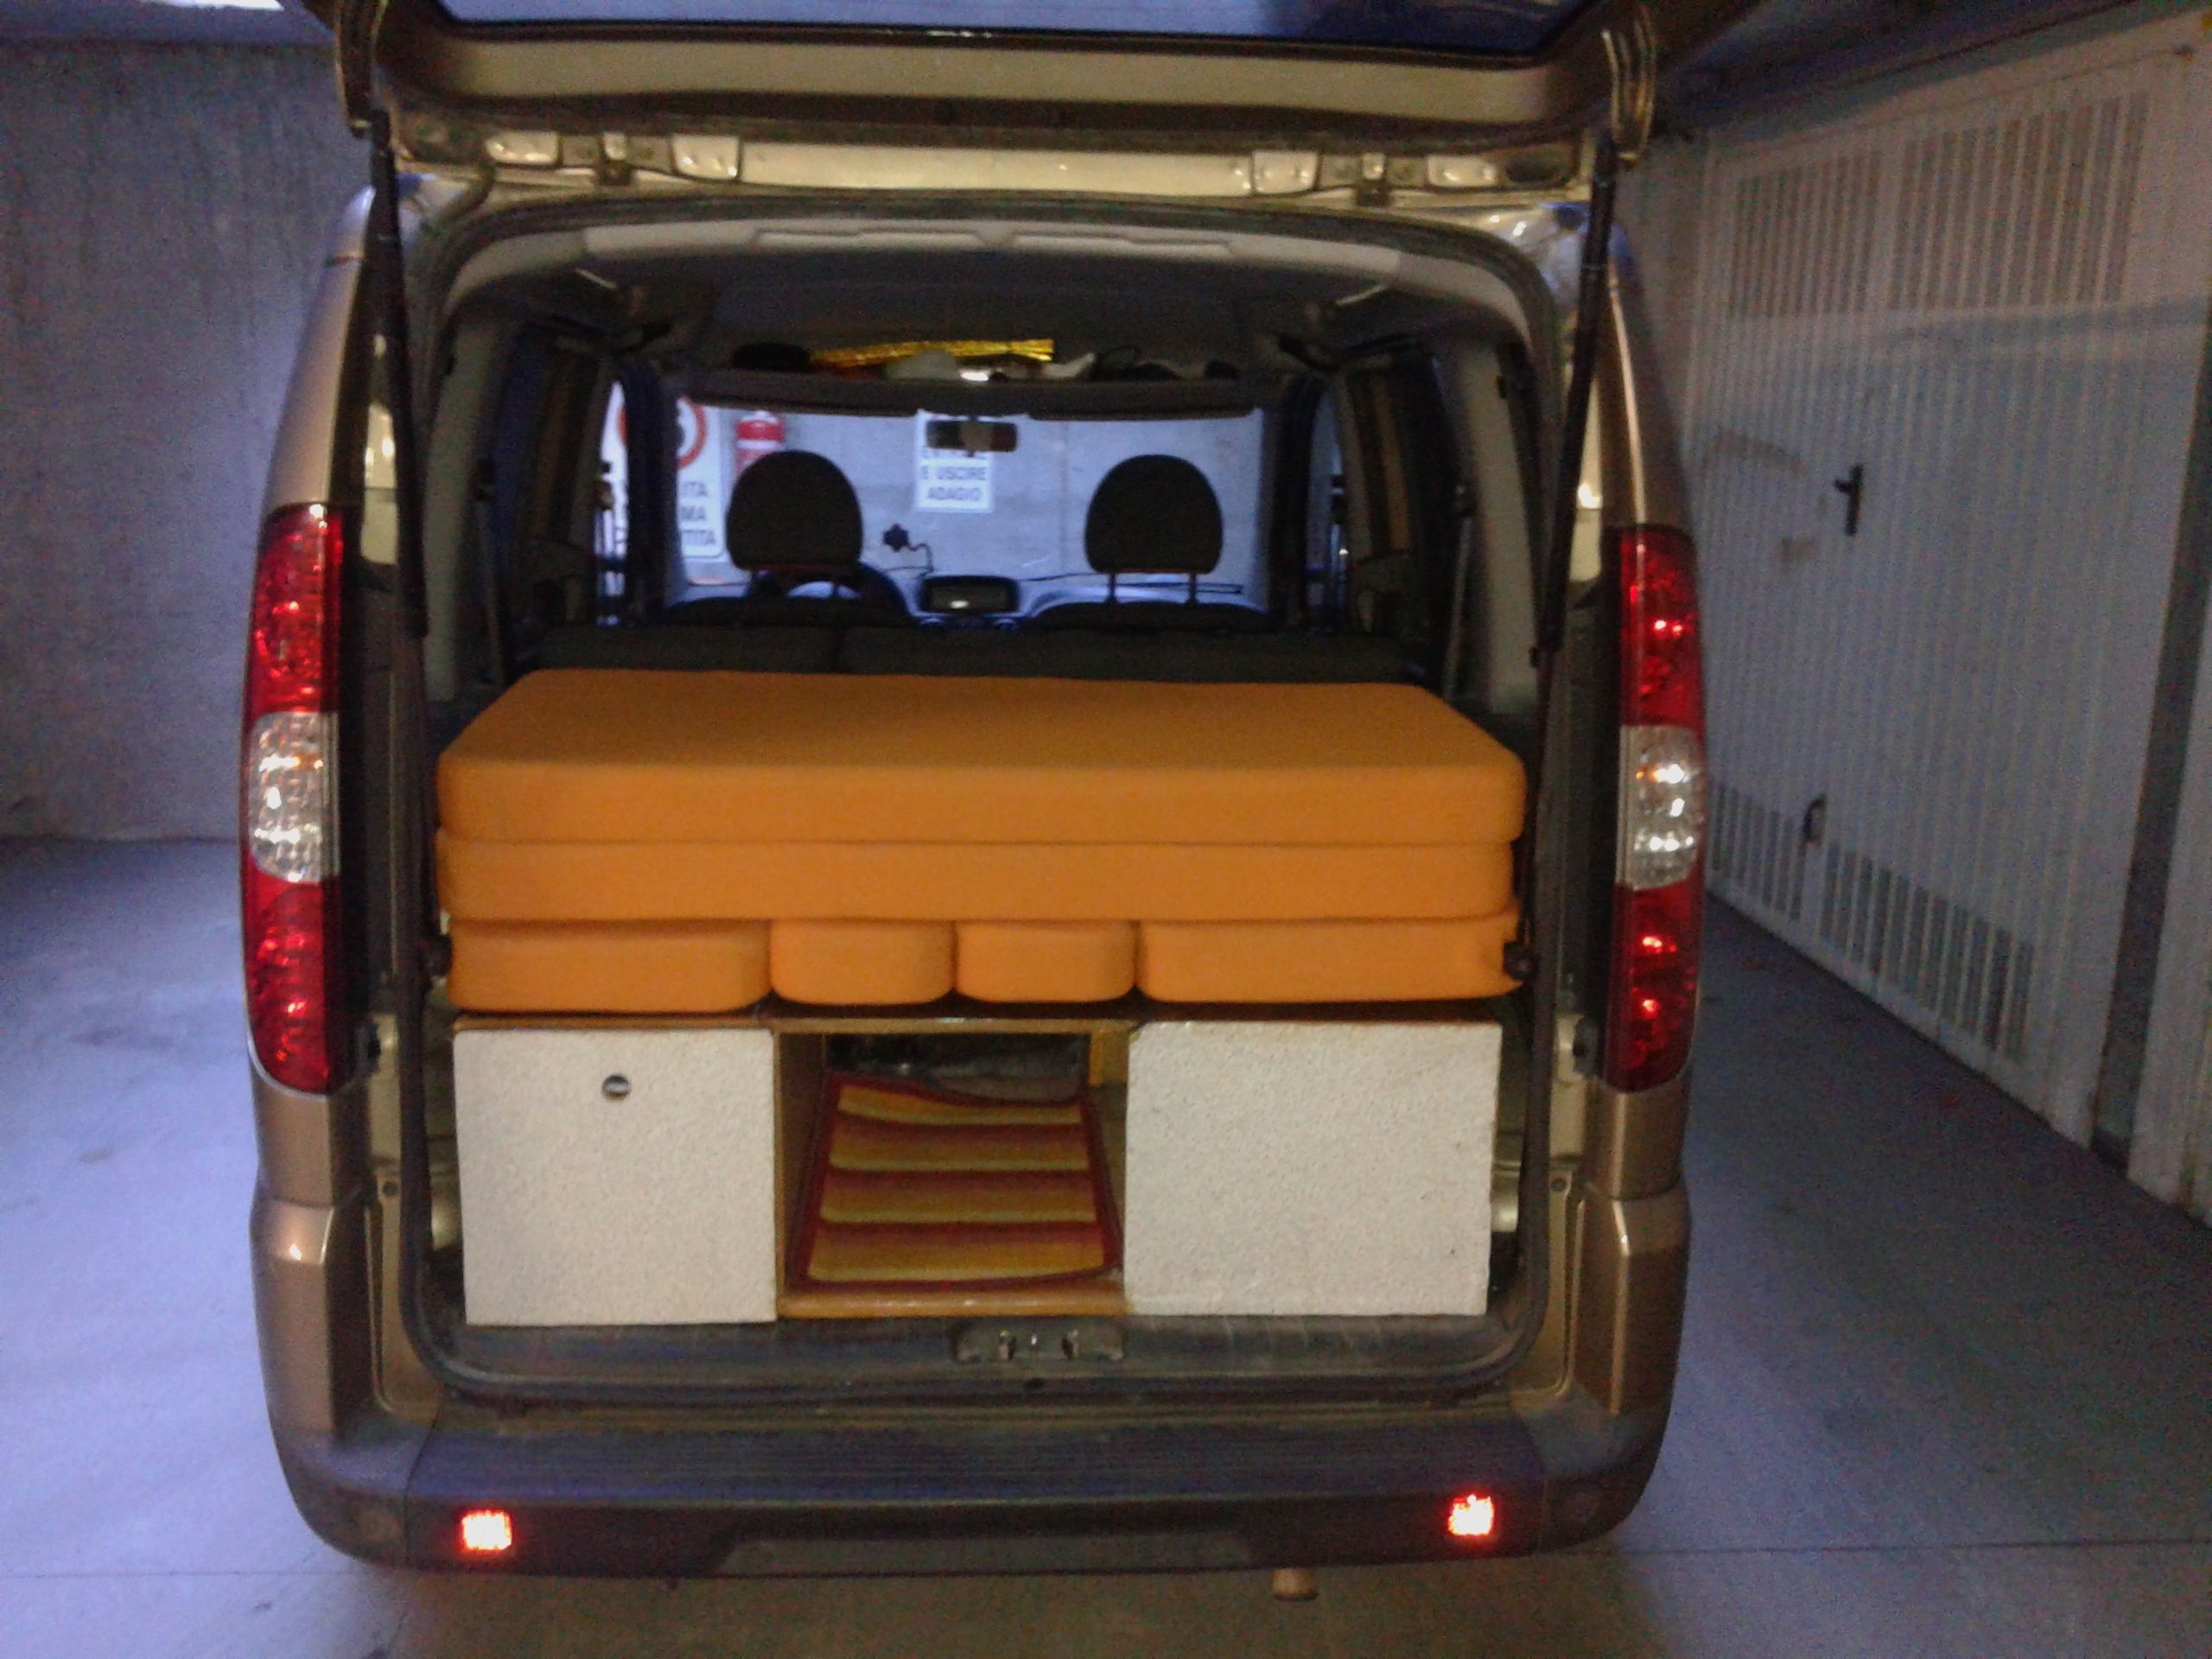 fiat doblo camper f at doblo camper pinterest fiat doblo. Black Bedroom Furniture Sets. Home Design Ideas